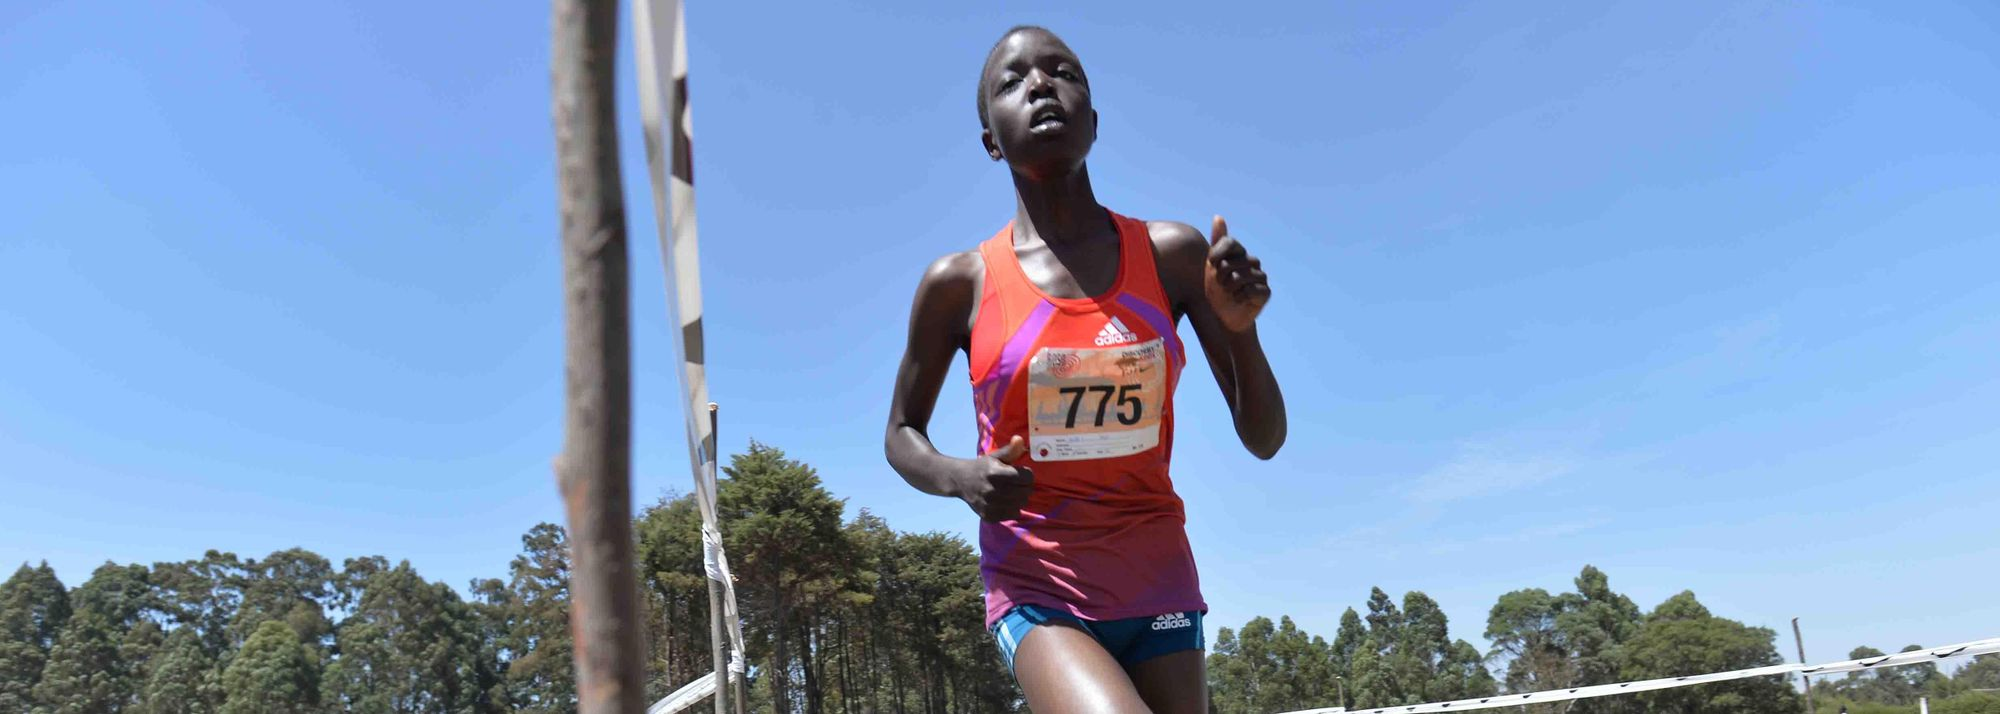 Kenyan Athlete: Running is also a business venture with